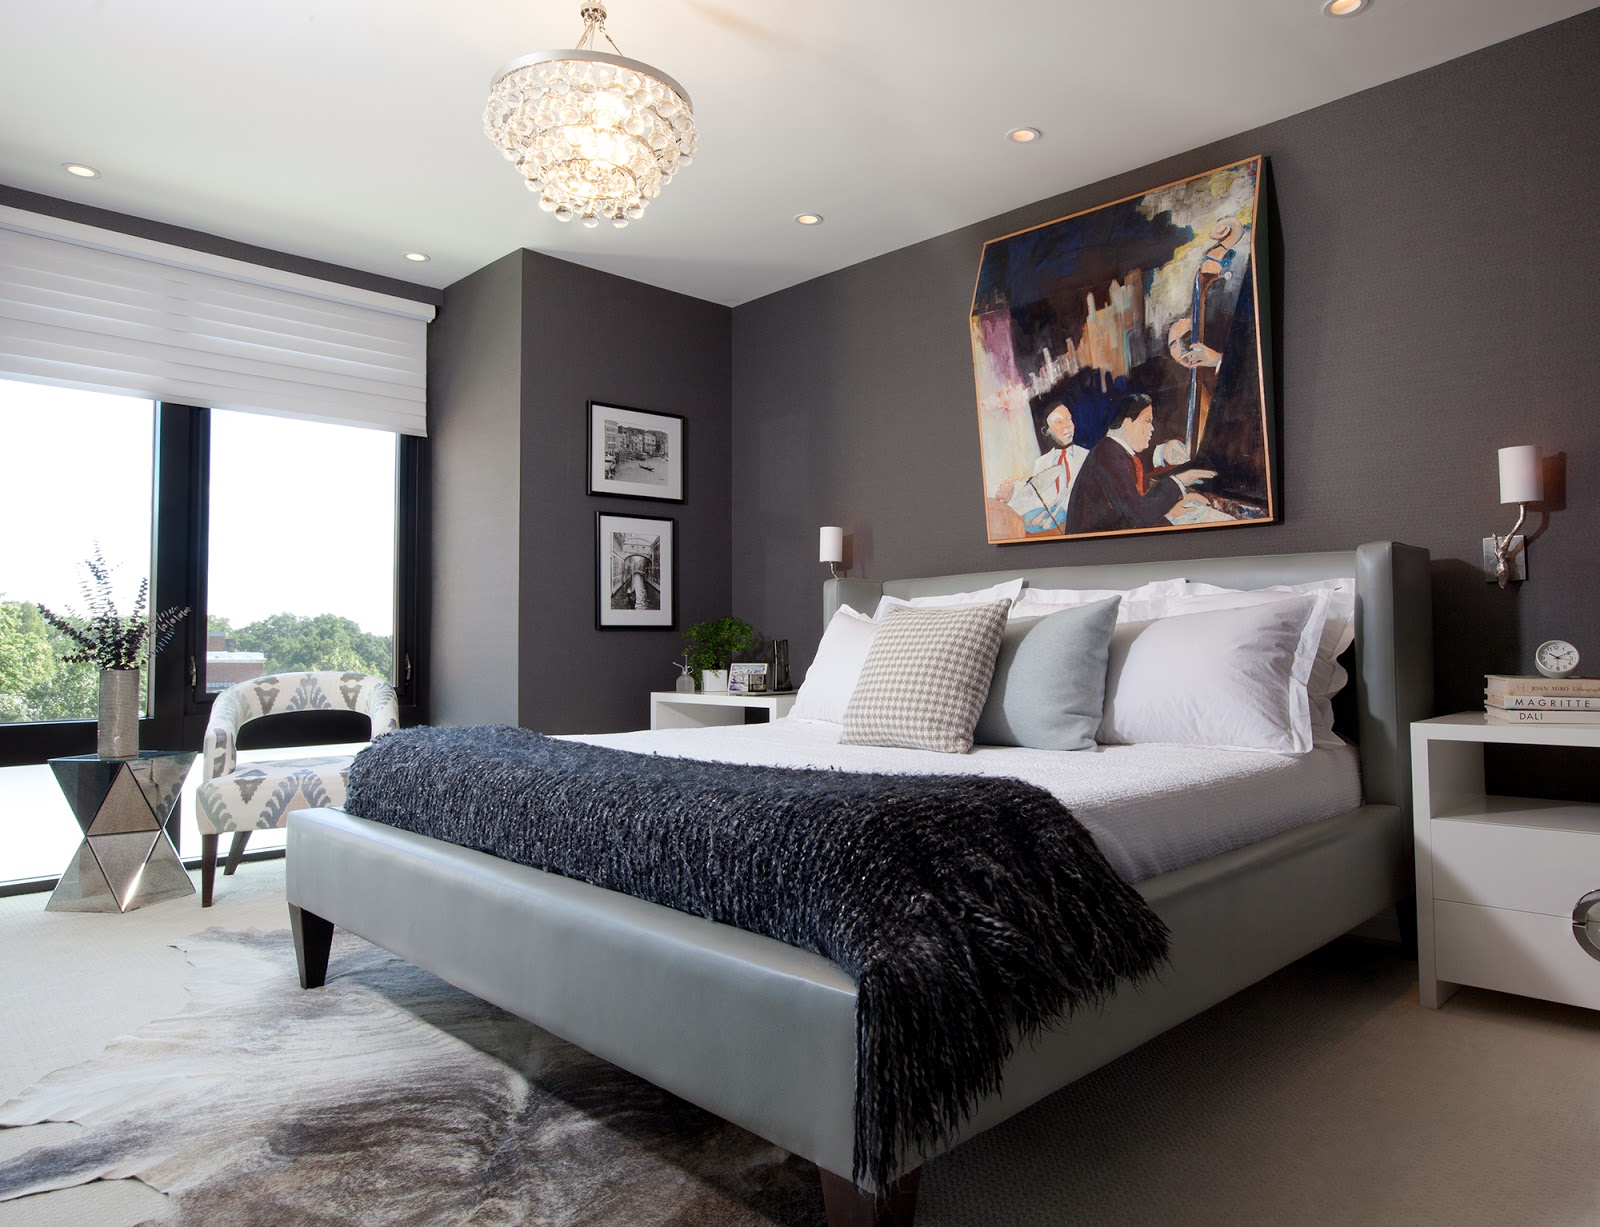 Top 50 Luxury Master Bedroom Designs  part 2  Home Decor Ideas